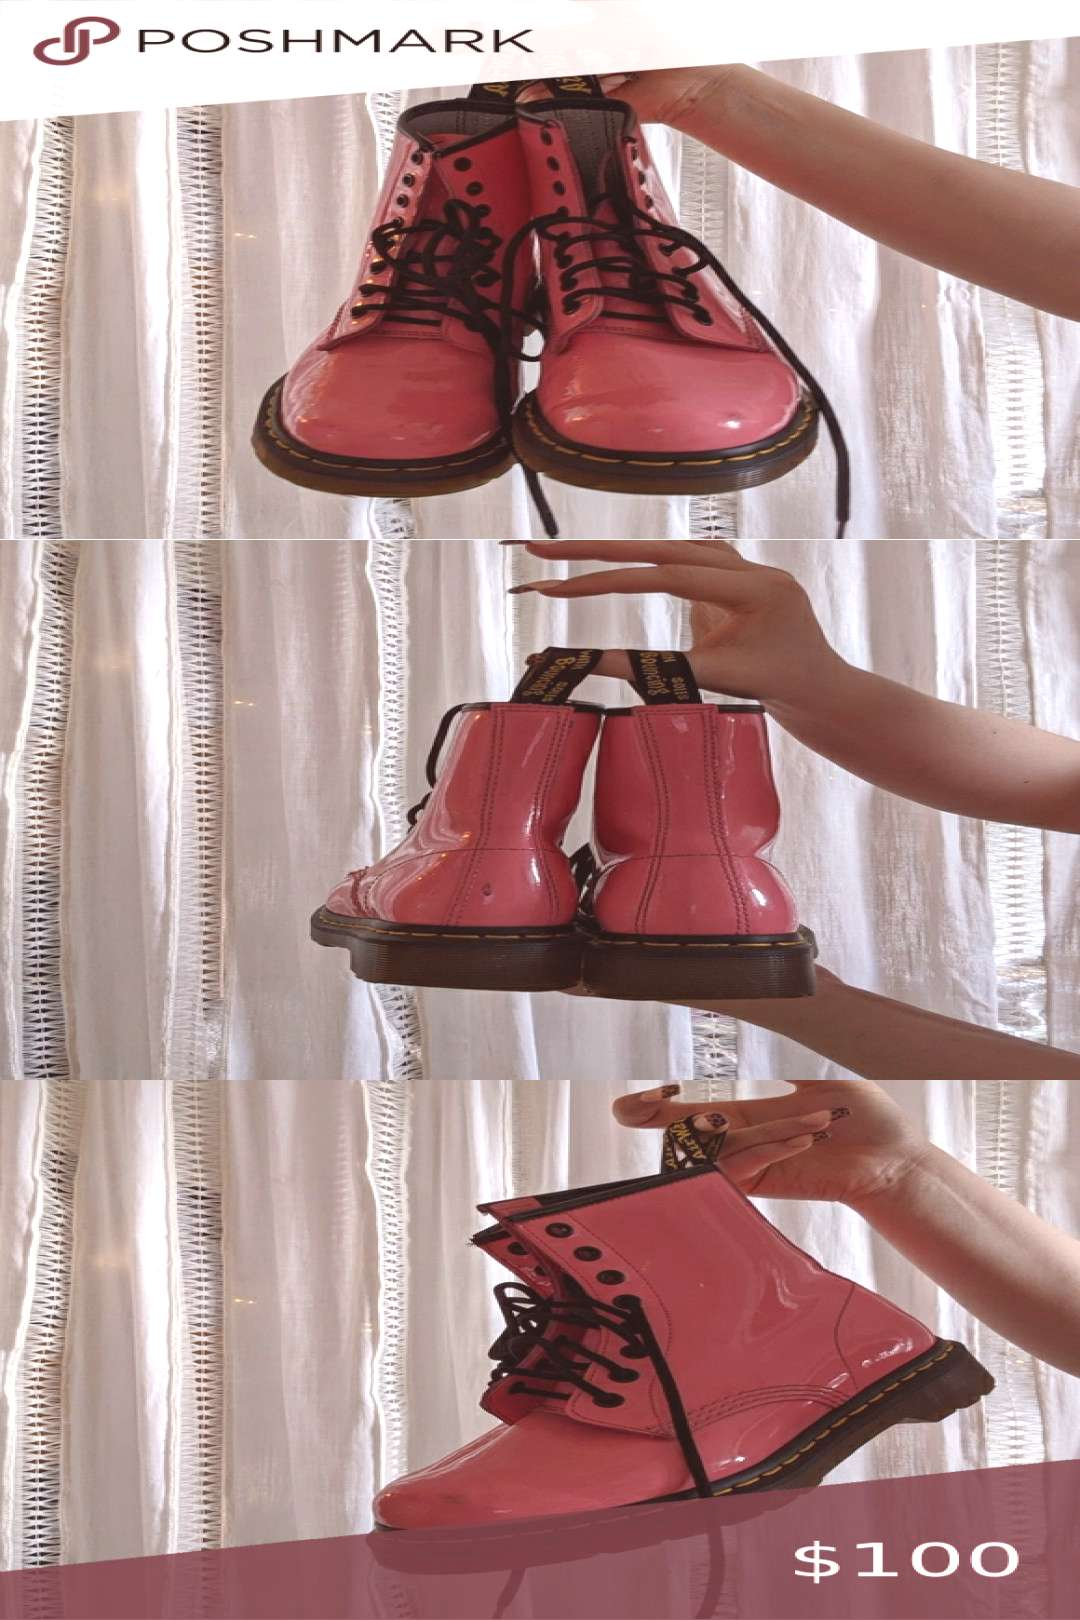 Hot Pink Doc Martin's Boots Slightly worn doc martins  Eight lace up  Small scuffs can be seen in i